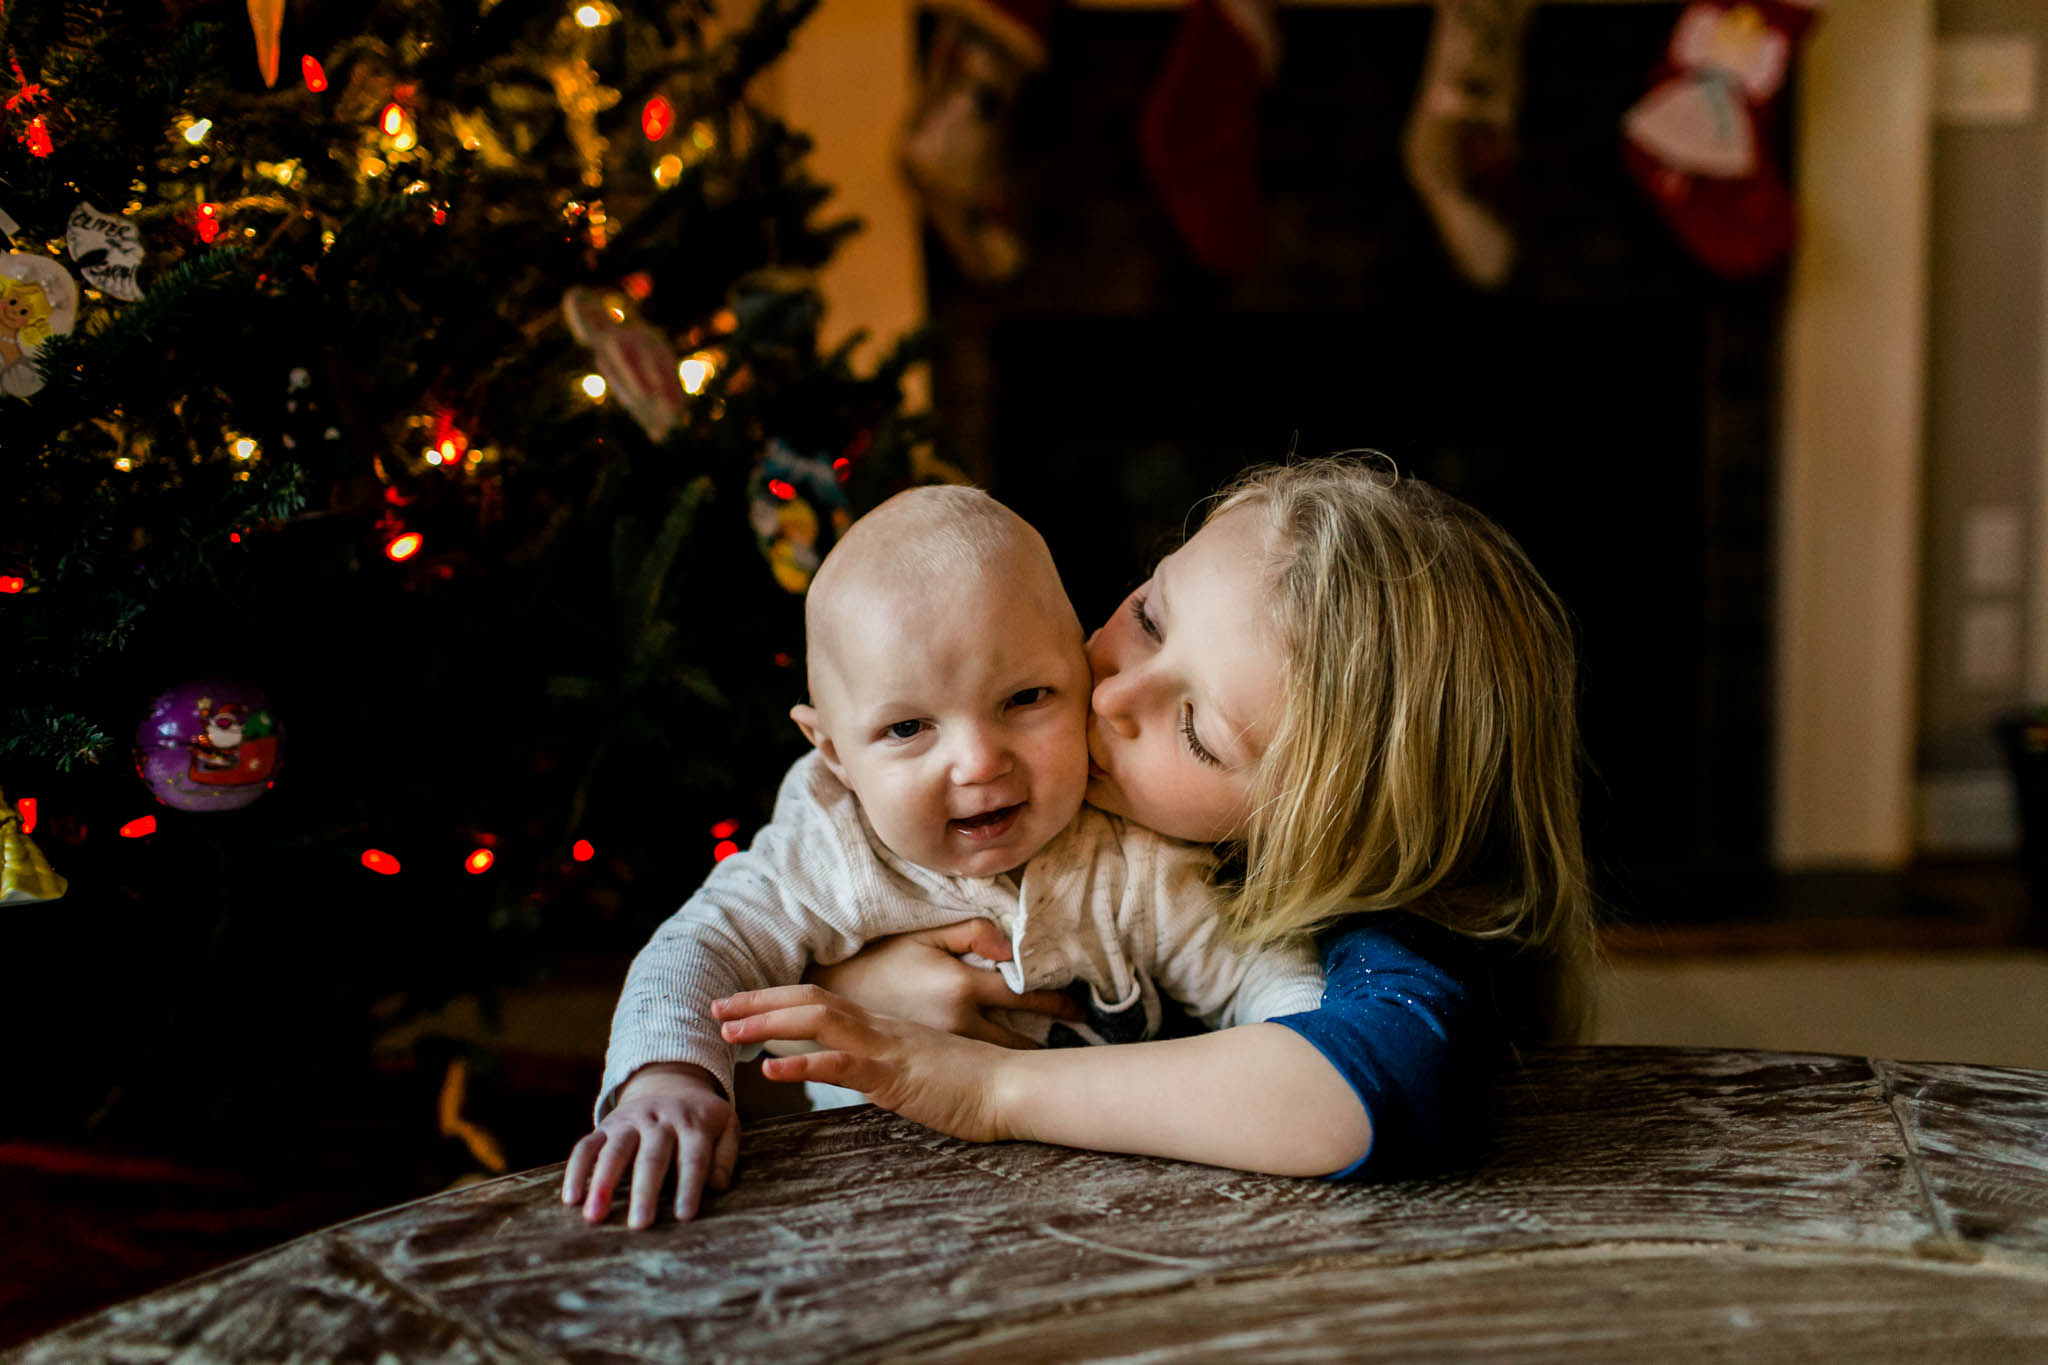 Sister kissing little brother on cheek | By G. Lin Photography | Durham Family Photographer